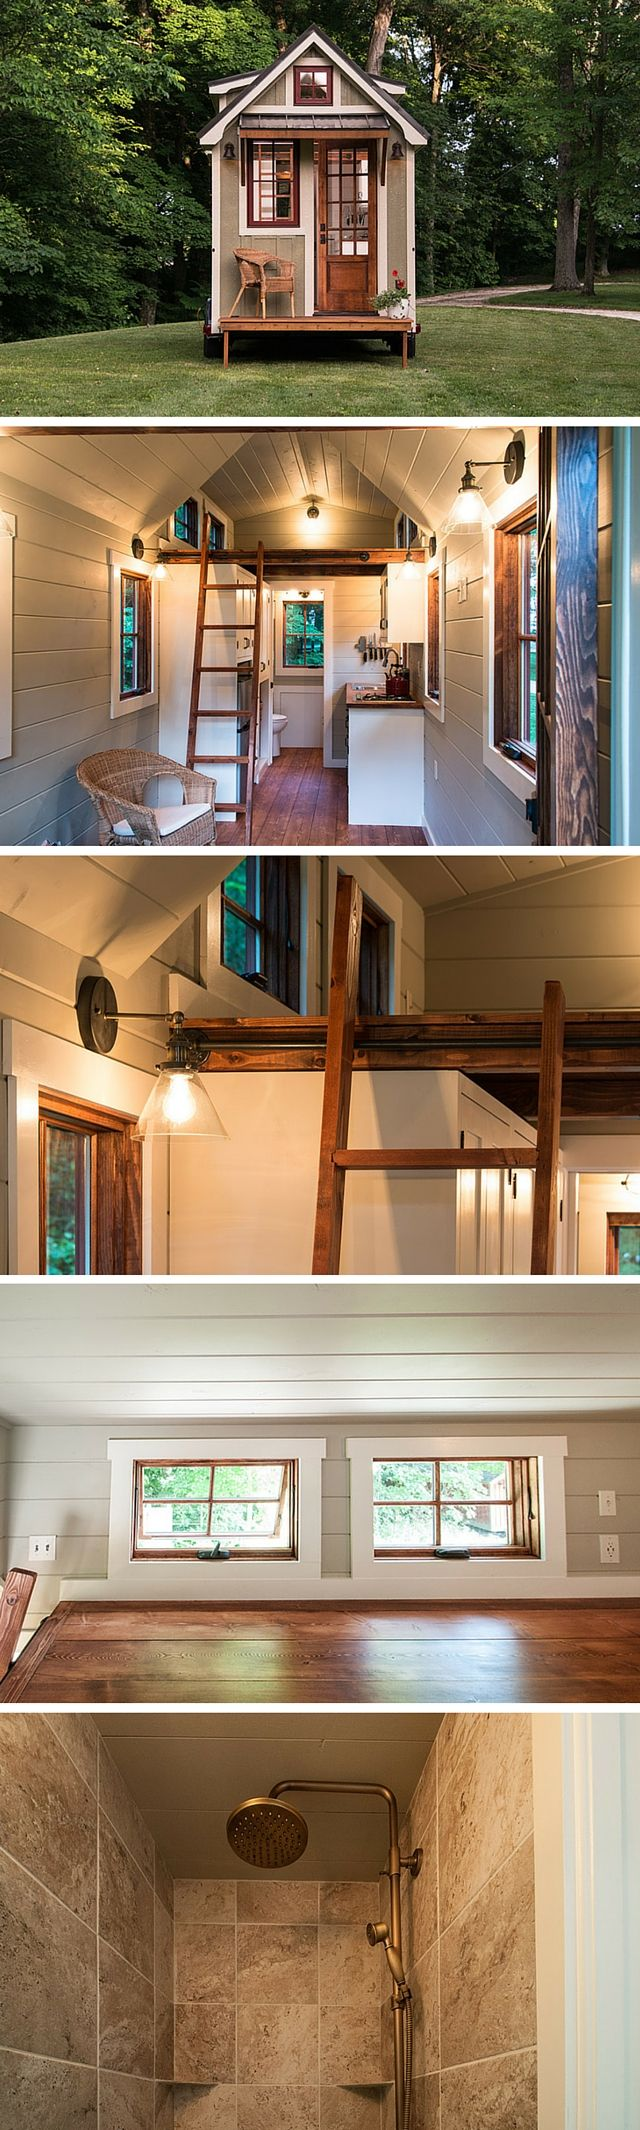 Best 25+ Tiny Homes Interior Ideas On Pinterest | Tiny Homes, Tiny Houses  And Tiny House Movement